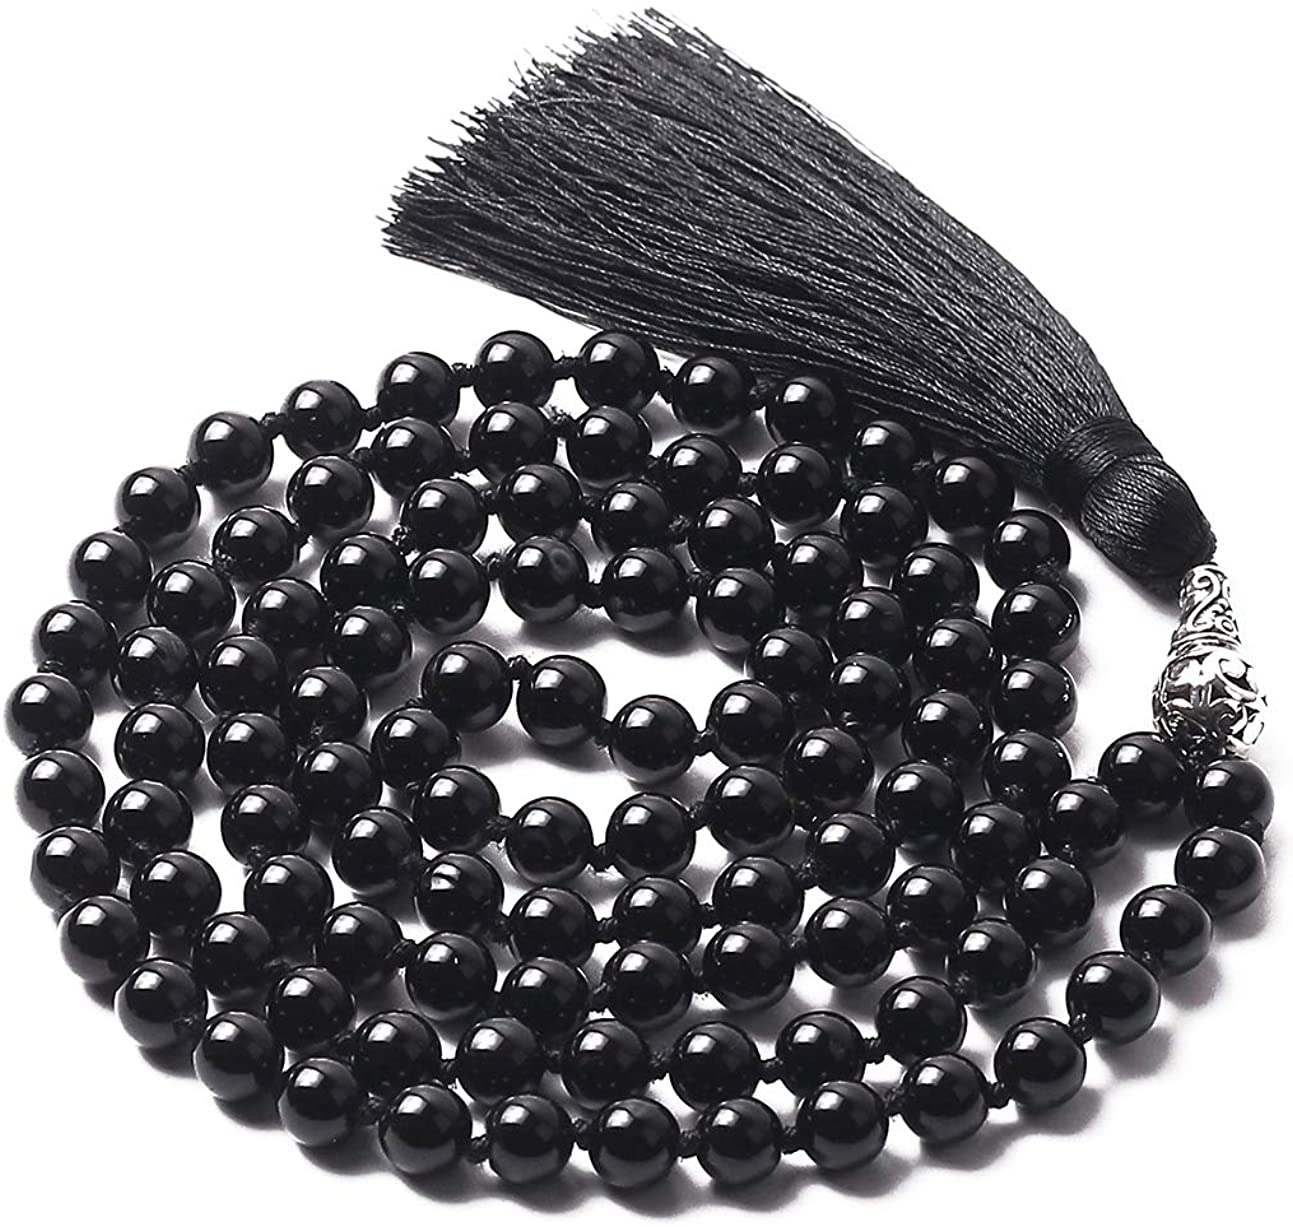 Mala Beads 108 8mm Mala Necklace Japa Mala Hand Knotted Tibetan Mala Prayer Beads Meditation Beads Yoga Necklace